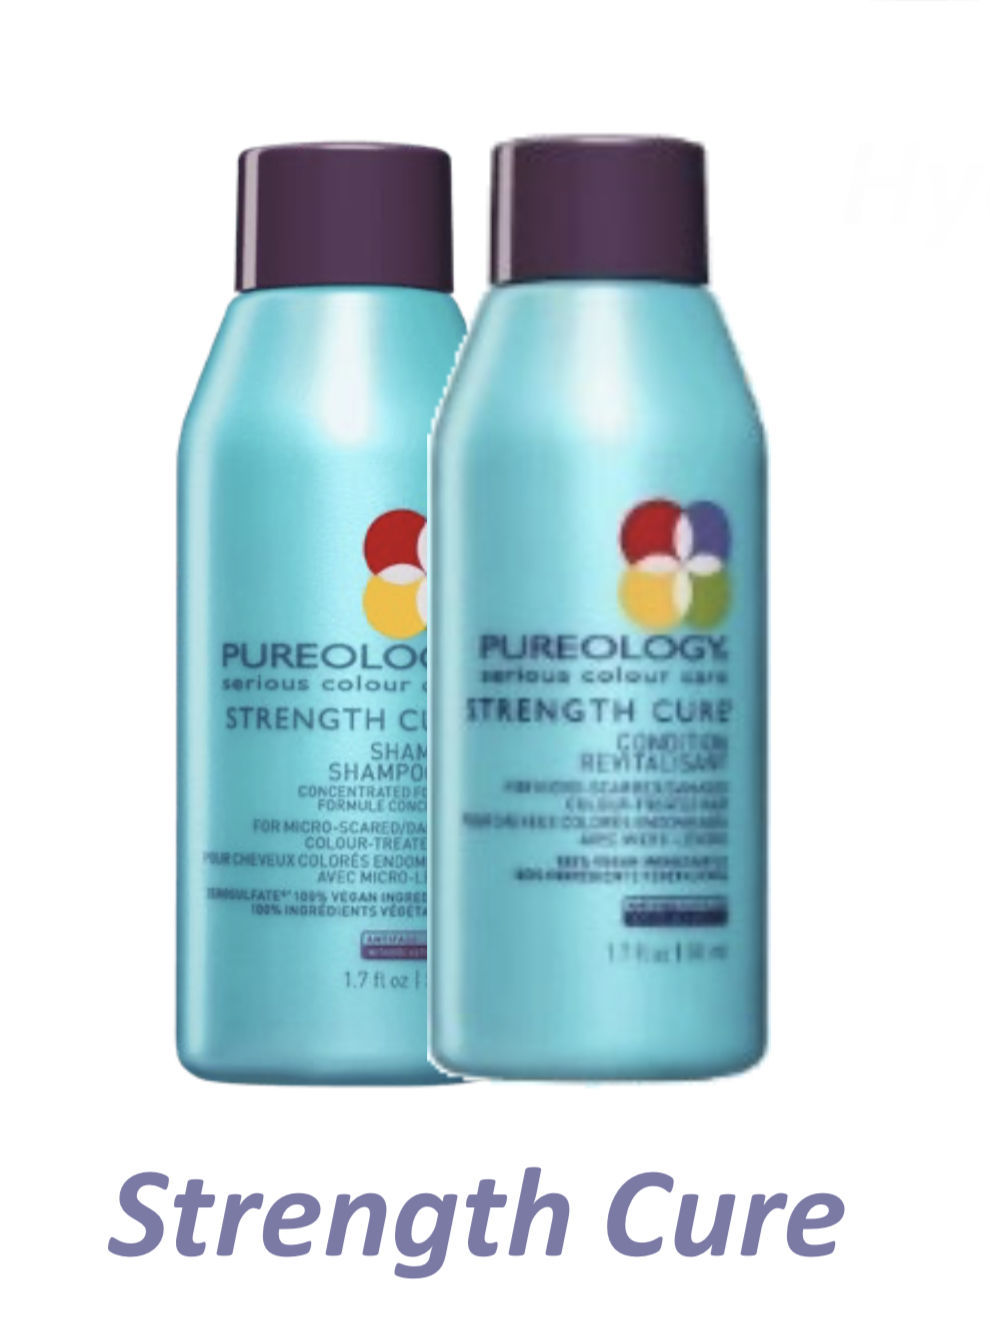 Pureology - Strength Cure Travel Set -